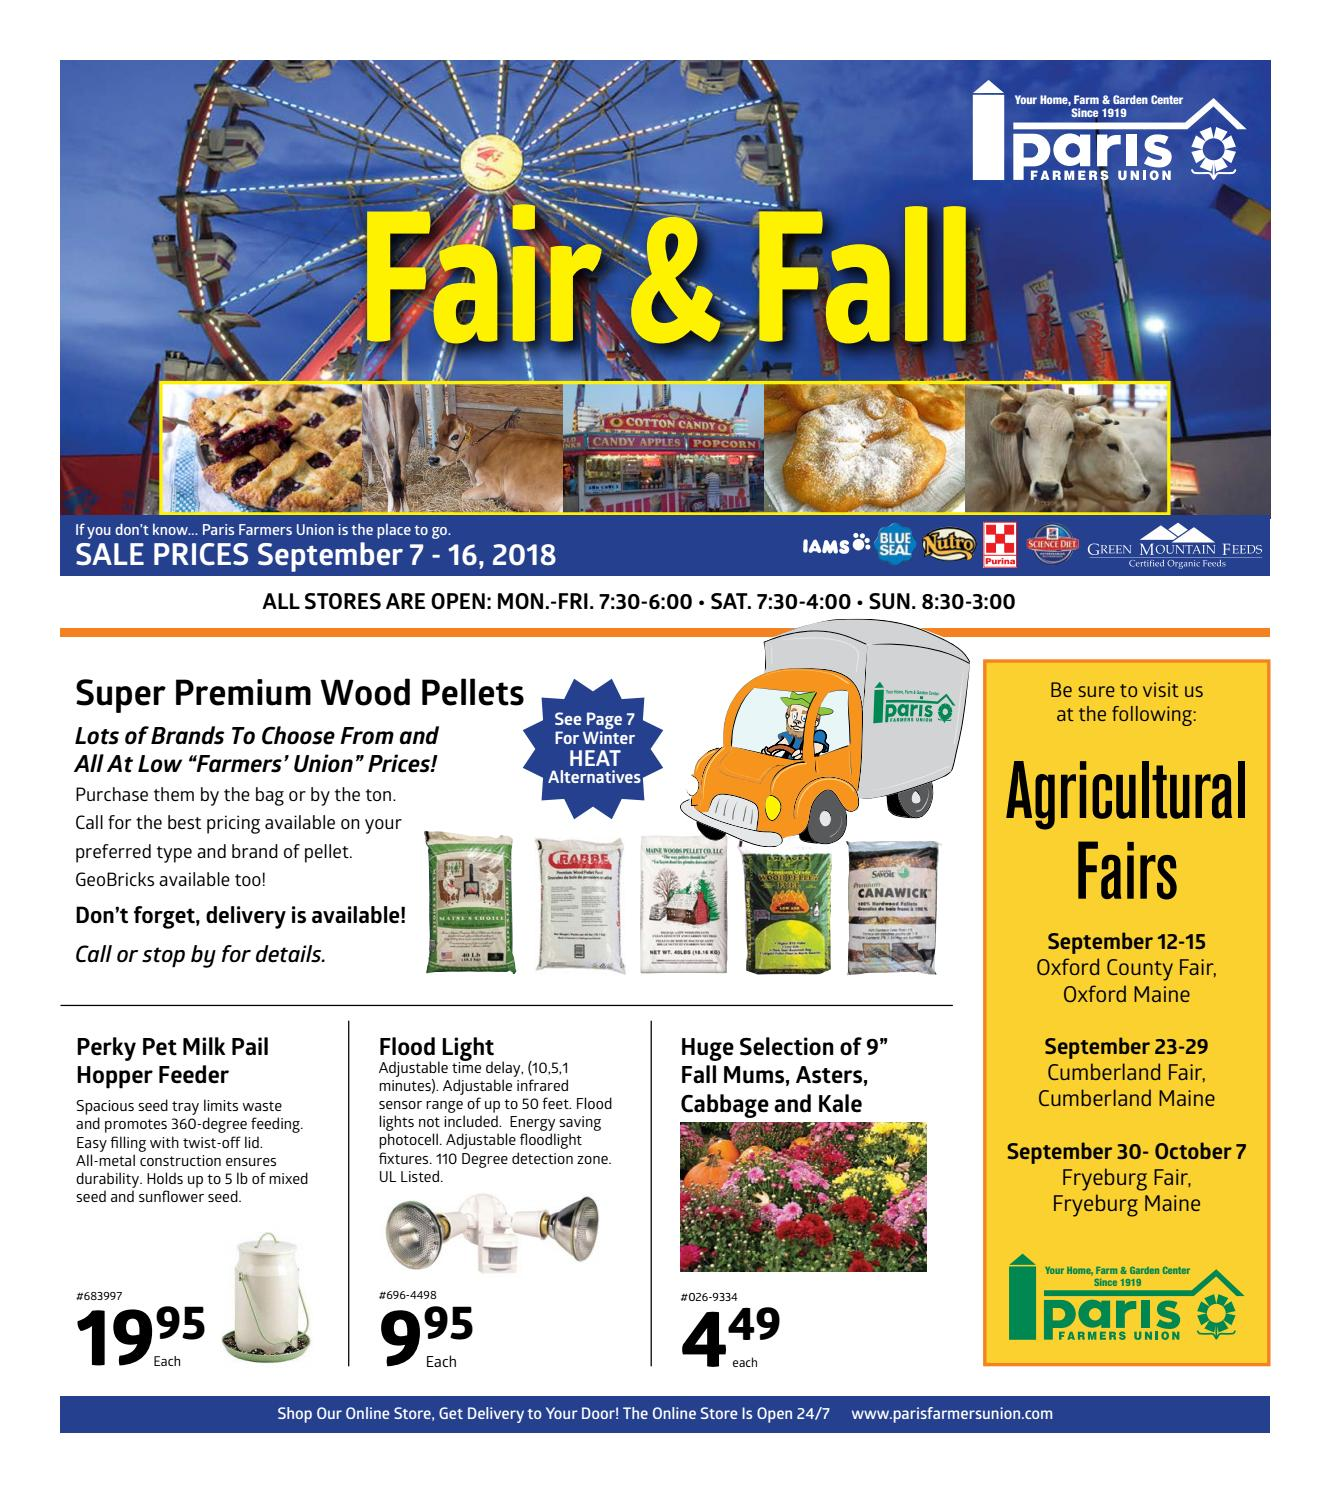 Paris Farmers Union Fair Amp Fall Sale Flyer By Paris